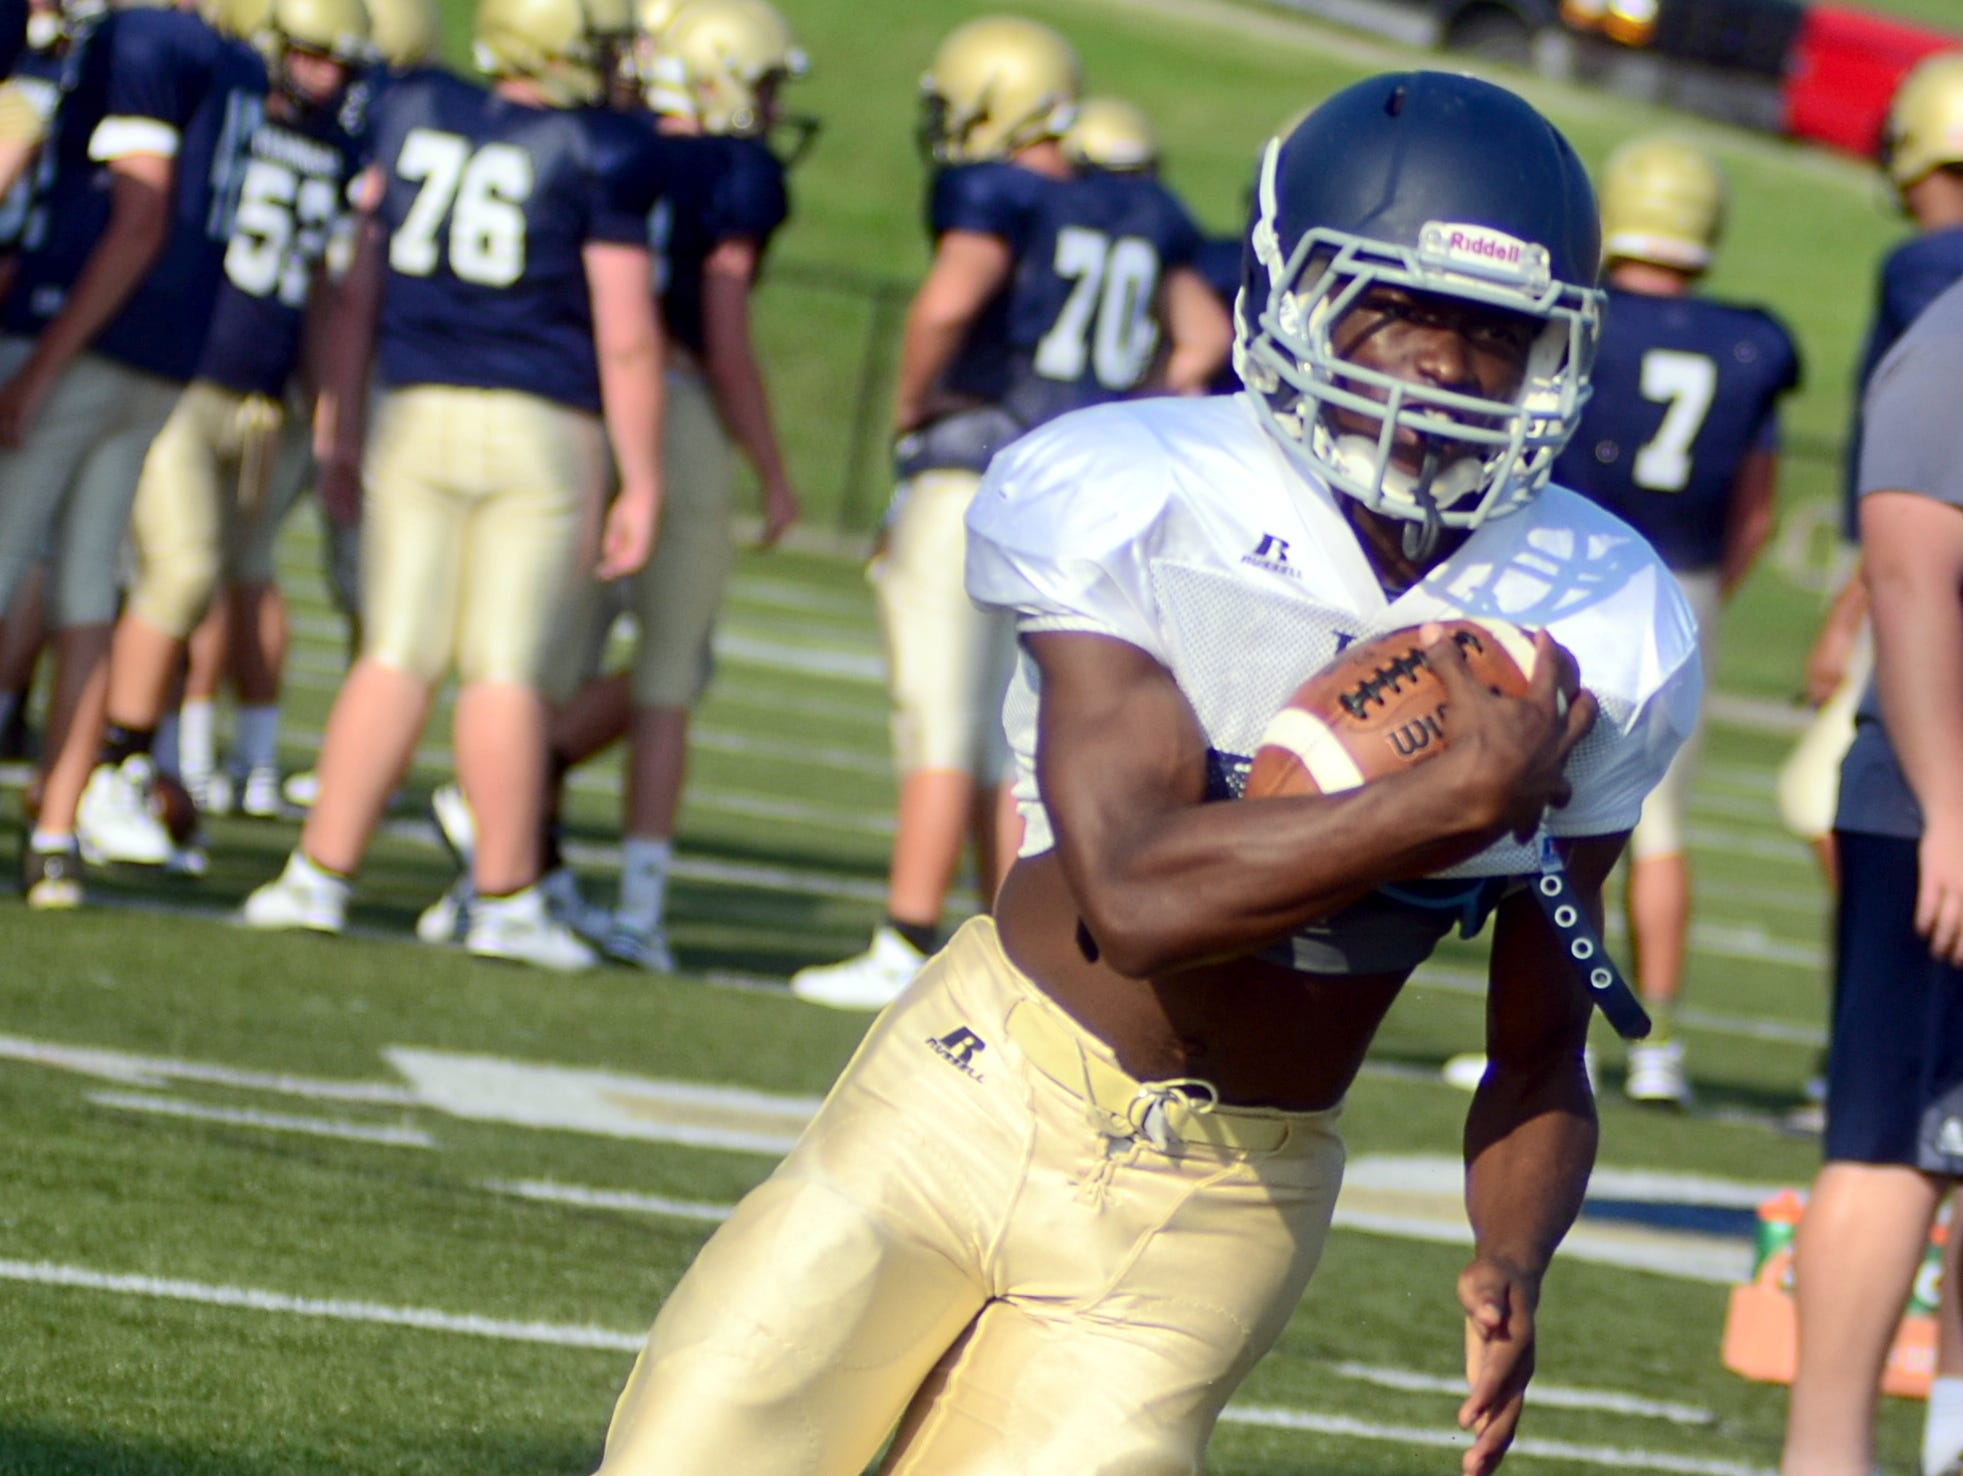 Pope John Paul II High senior tailback Jamaal Thompson cuts outside for yardage during Friday's scrimmage against Sycamore.